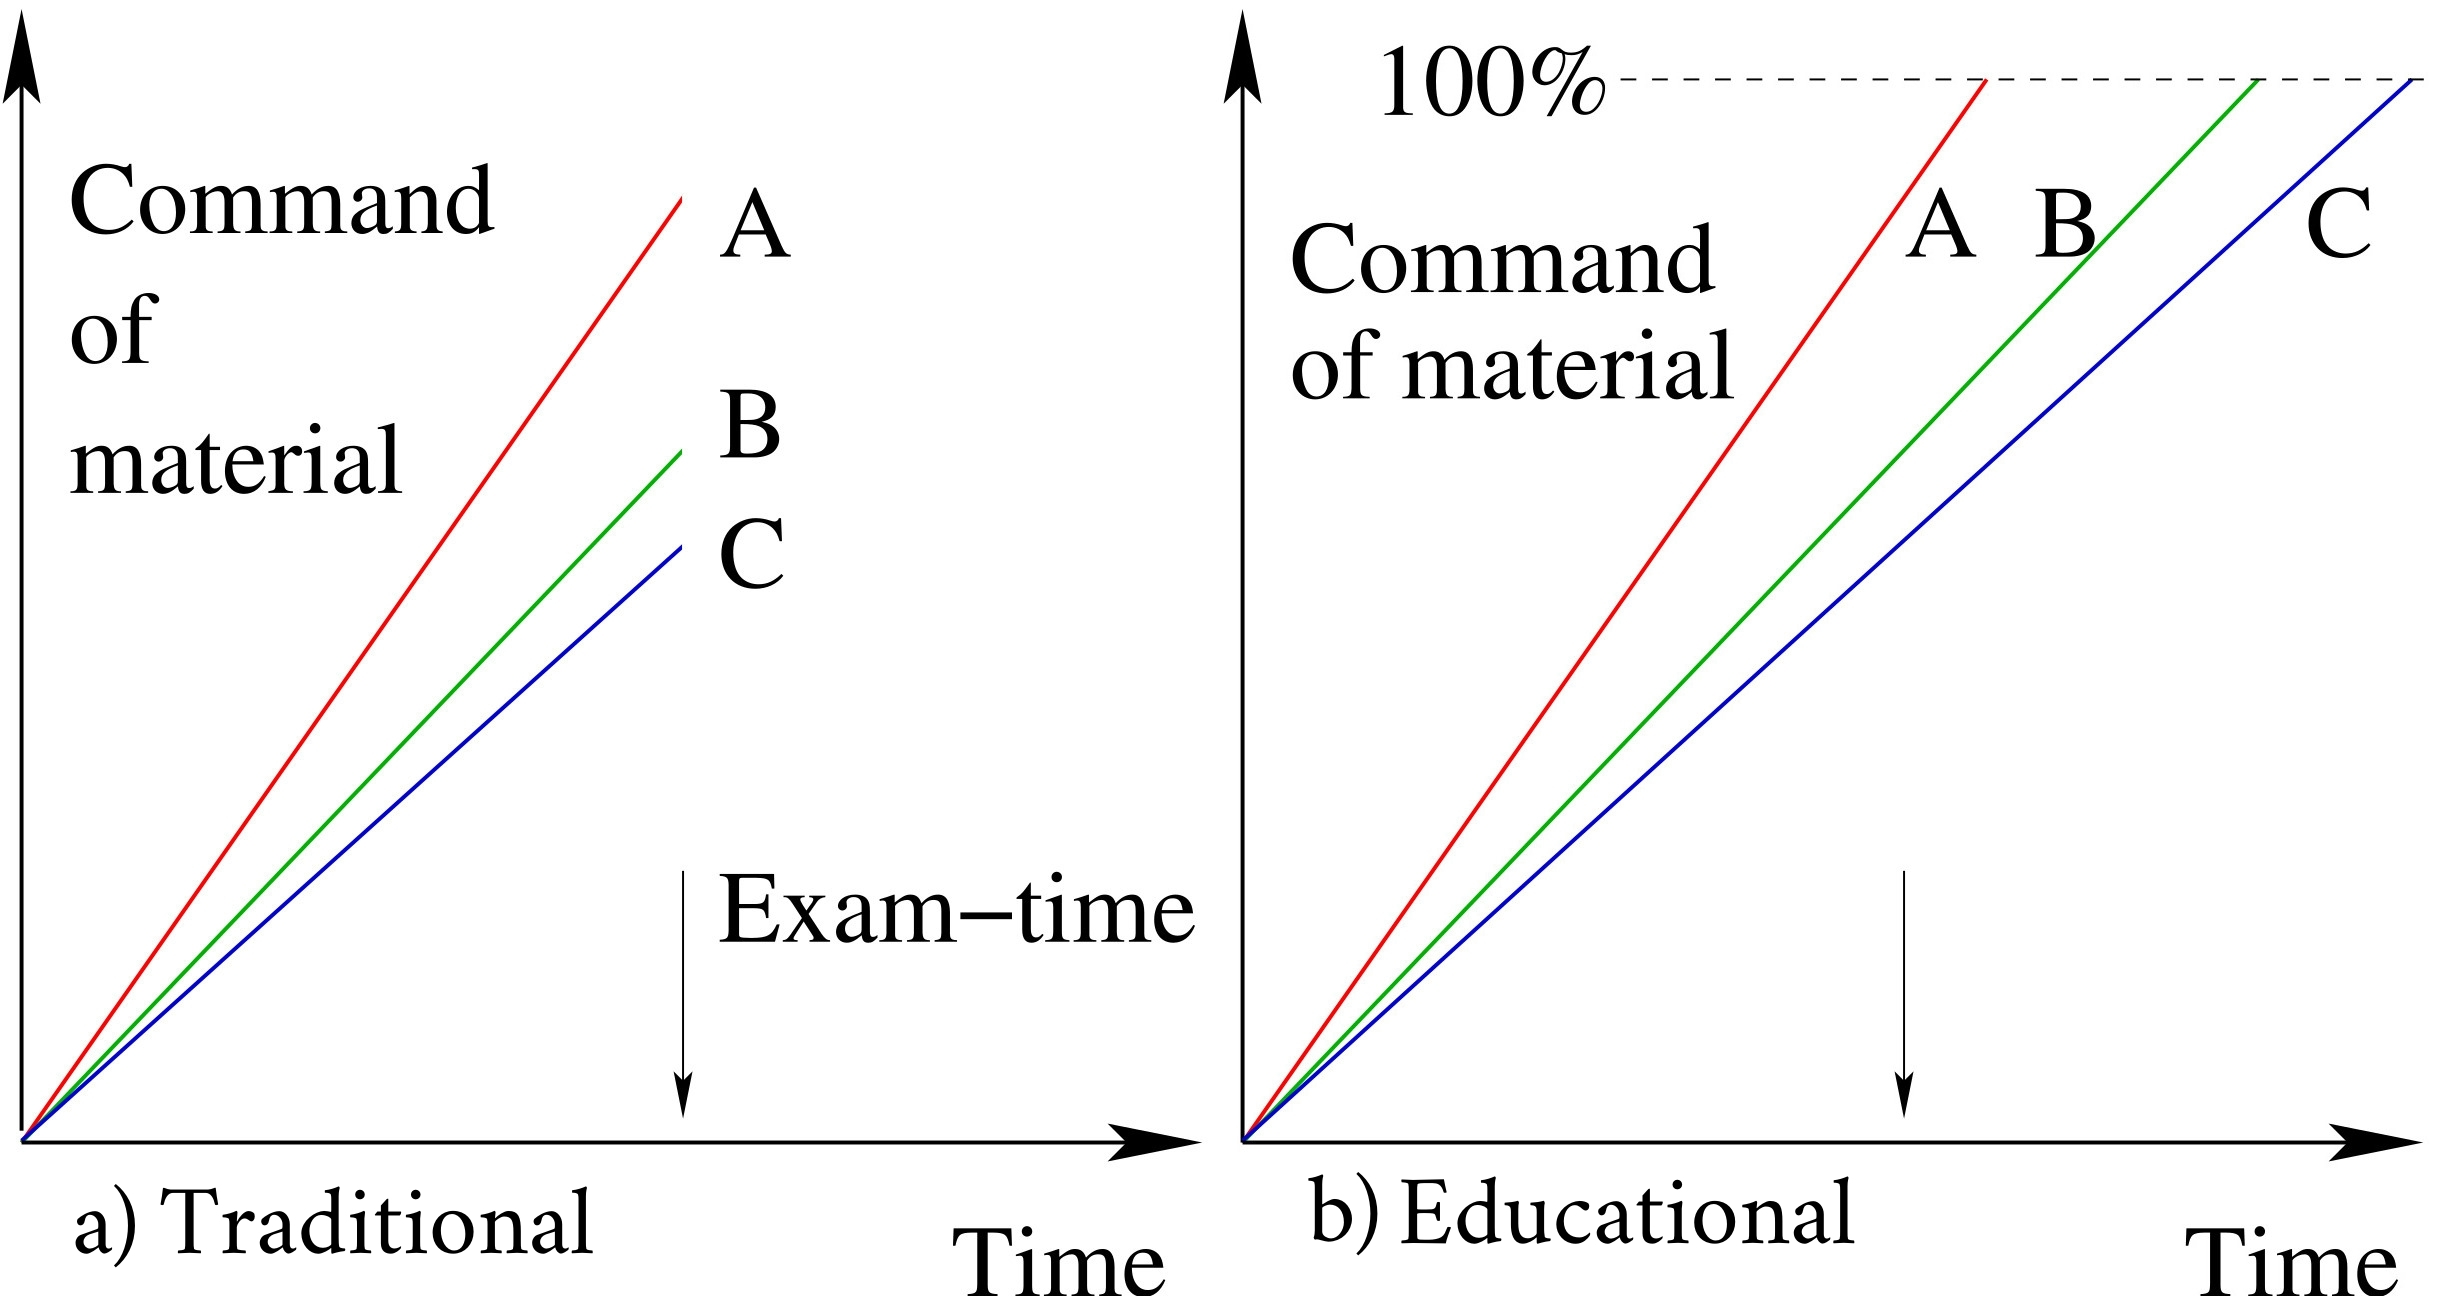 Figure 1: Everyone can get an A, regardless of learning rate, if their education is not halted by exams. Traditional system on the left, with an educational system on the right.